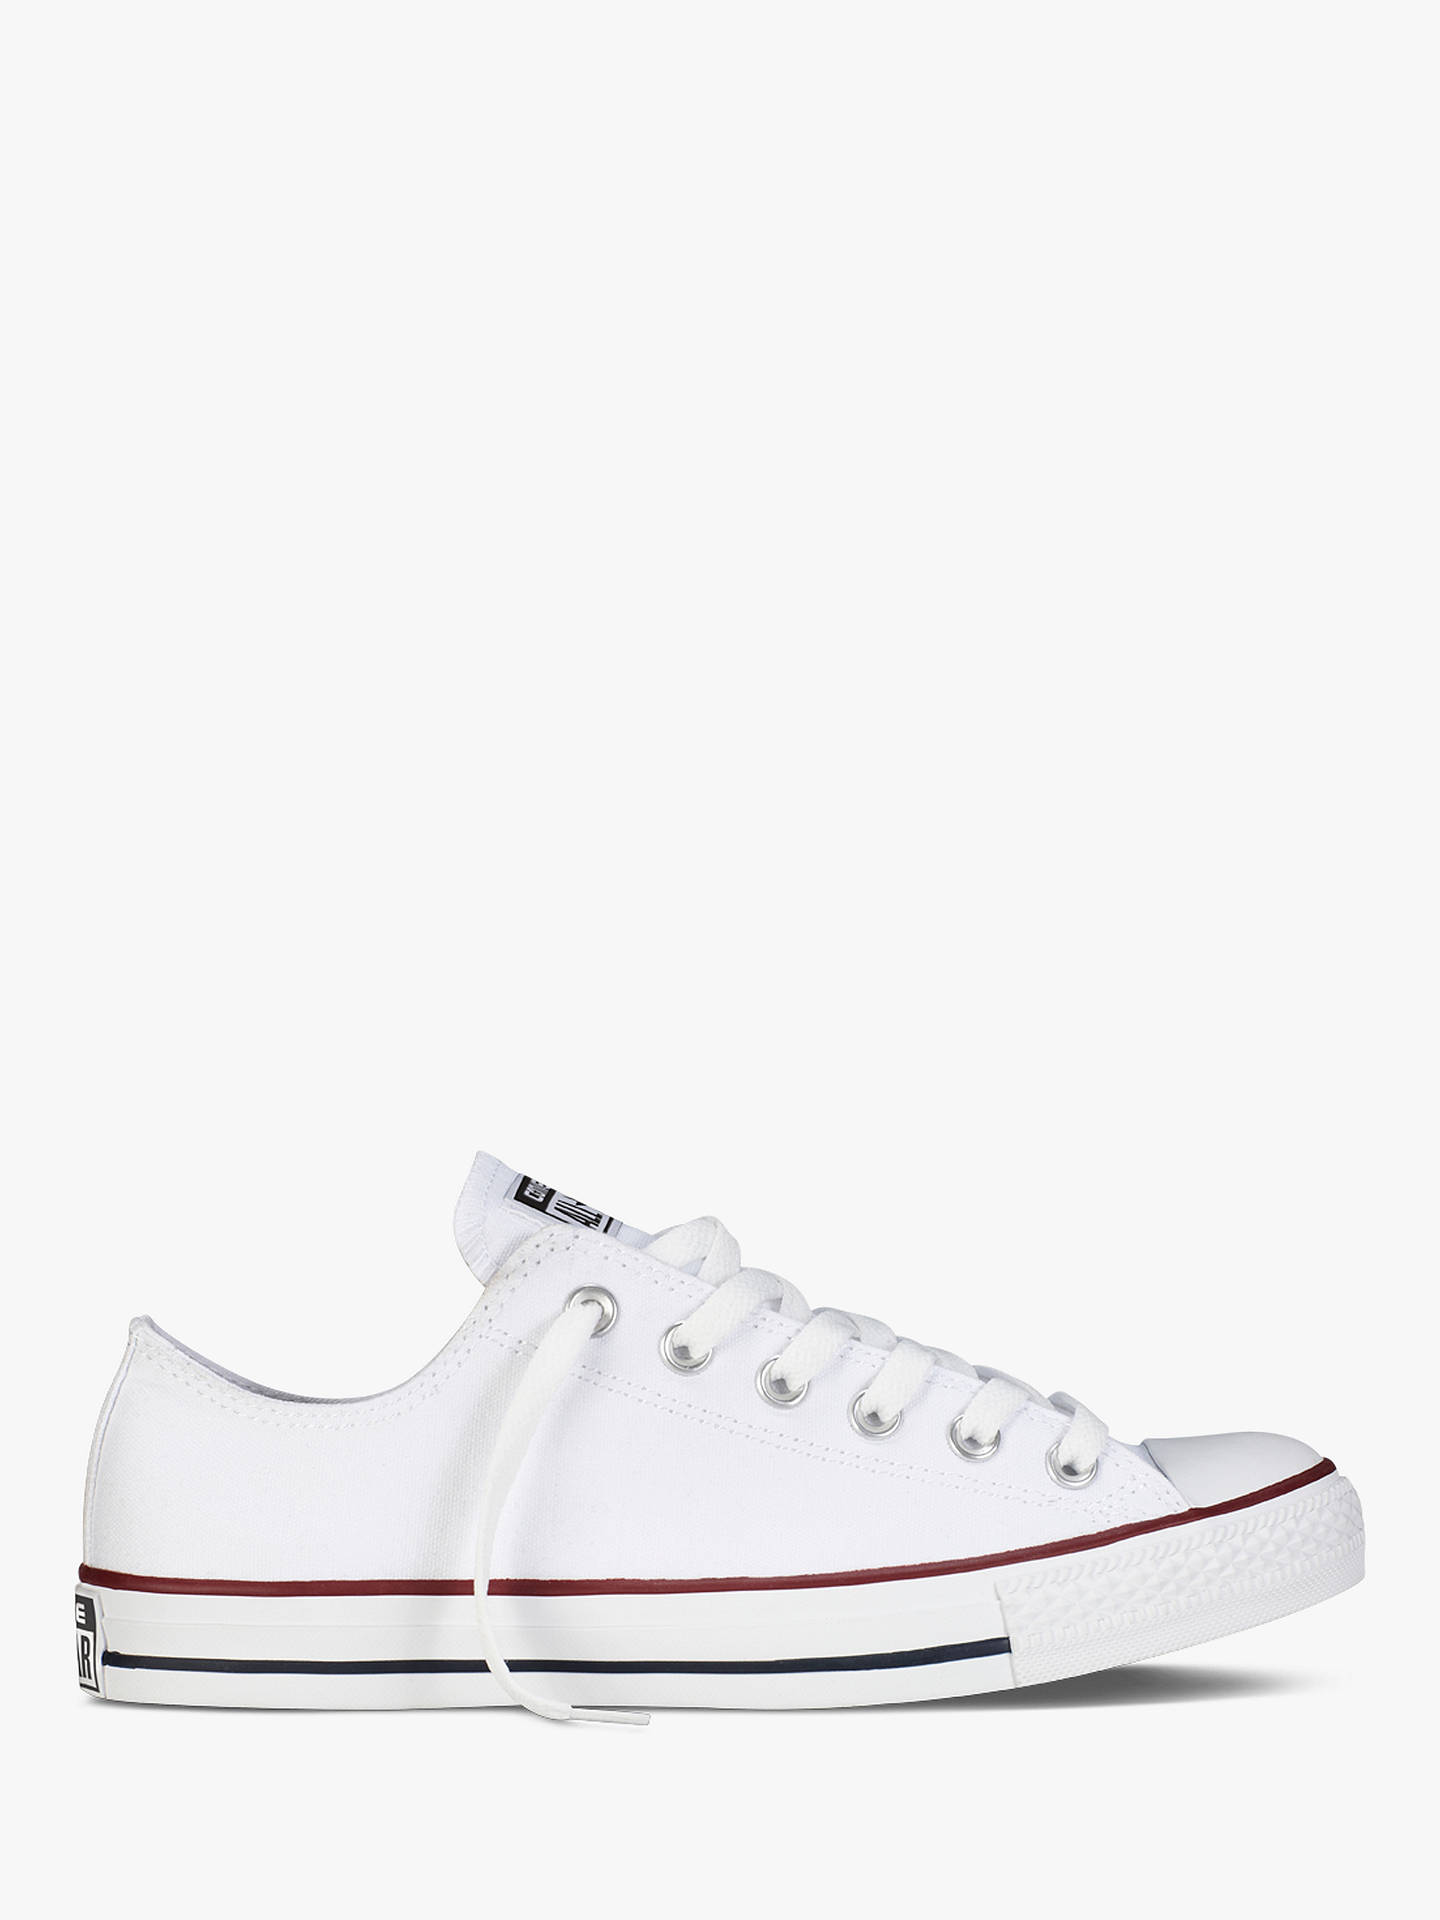 3830b679ef604c Converse Children s Chuck Taylor All Star Trainers at John Lewis ...